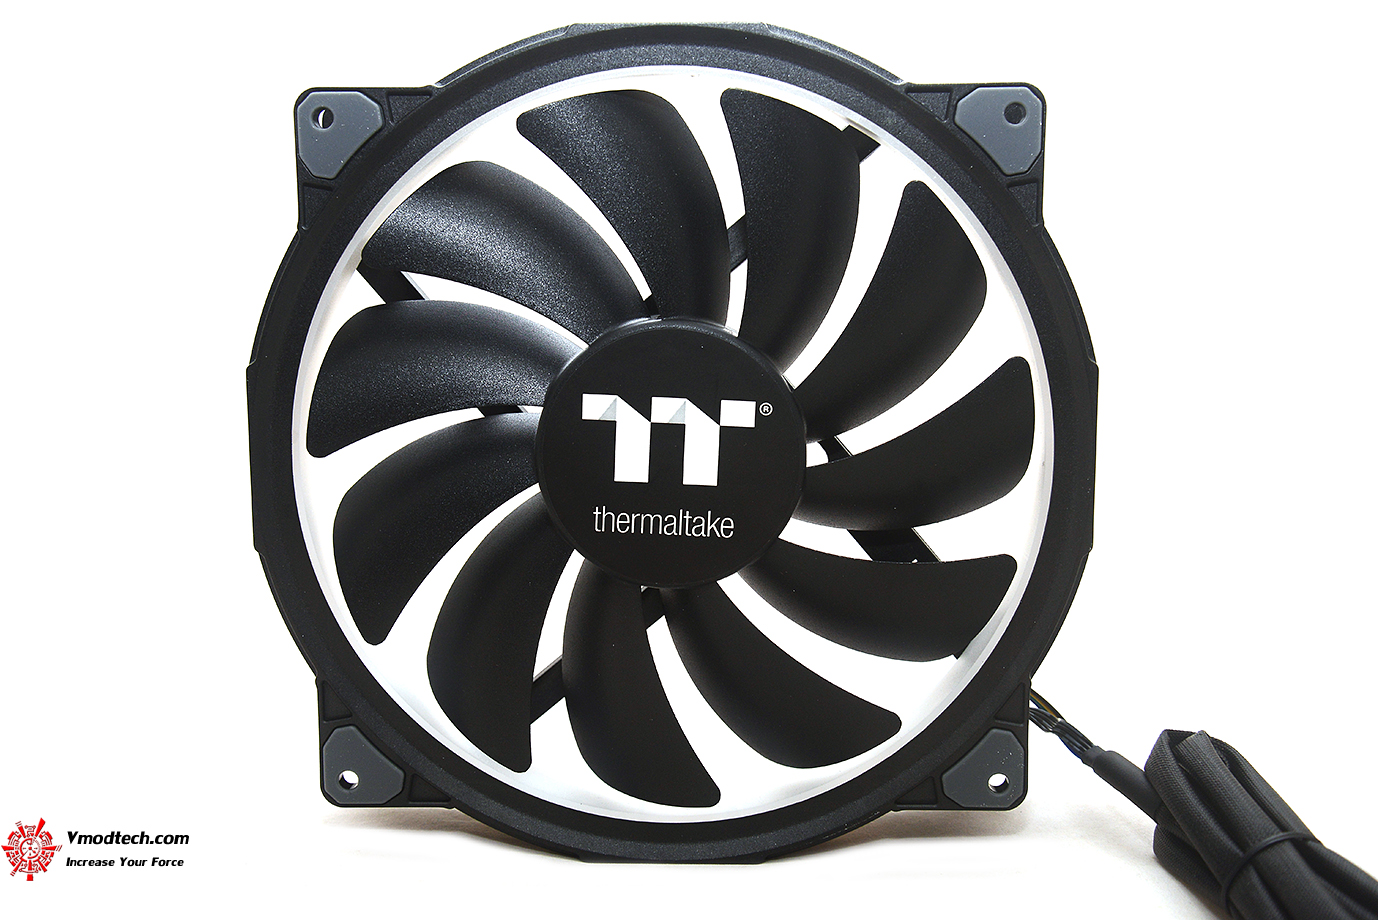 dsc 6572 Thermaltake Riing Plus 20 RGB Case Fan TT Premium Edition (Single Fan Pack w/o Controller) Review